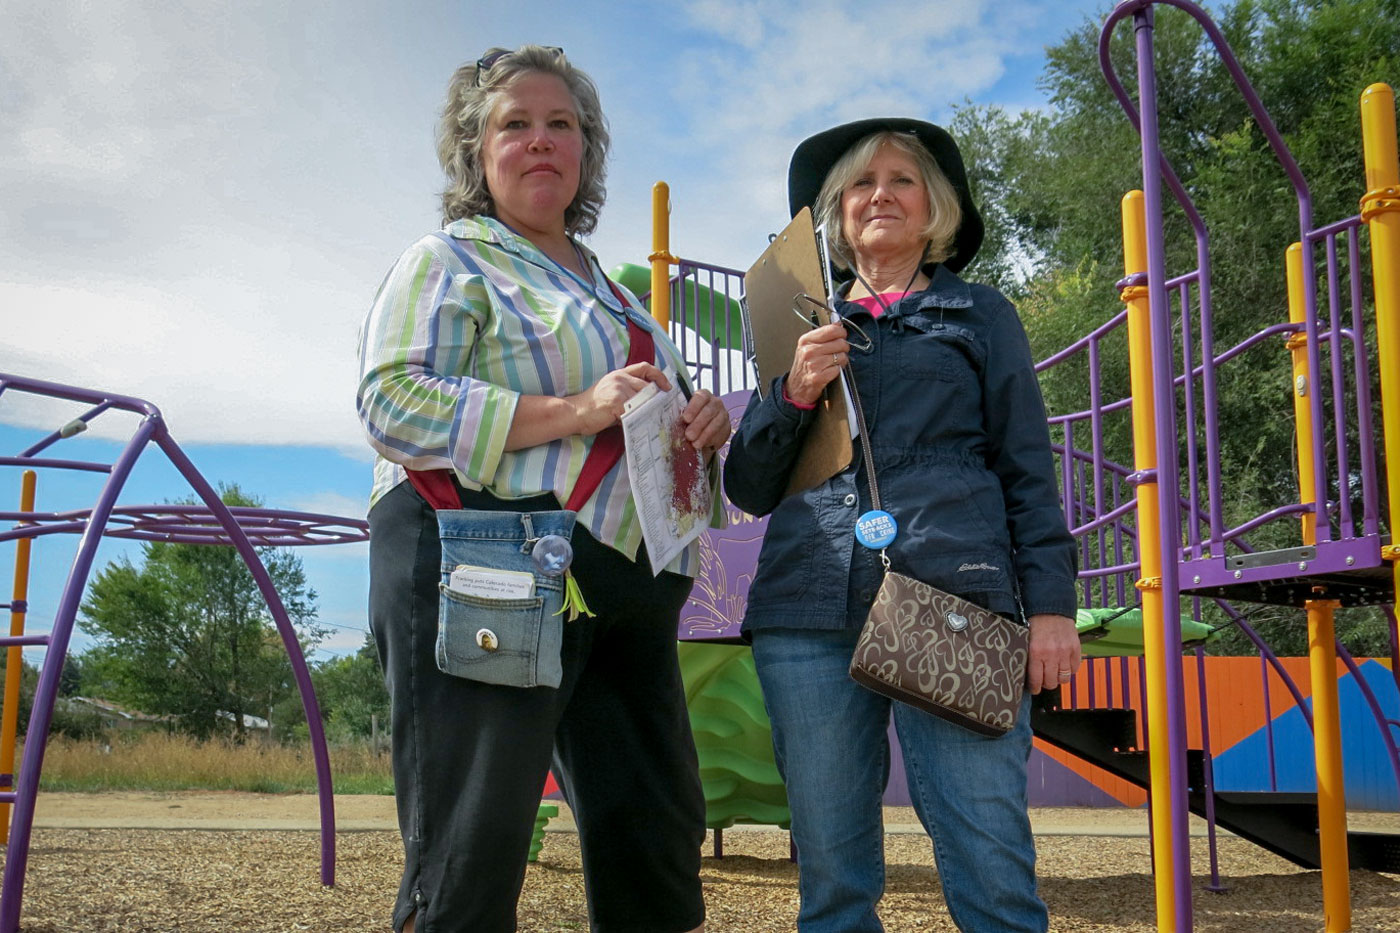 <p>Therese Gilbert and Pat Califana are volunteers with Colorado Rising. The group is promoting Proposition 112, which would impose the largest setback distance in the country between new wells and homes.</p>